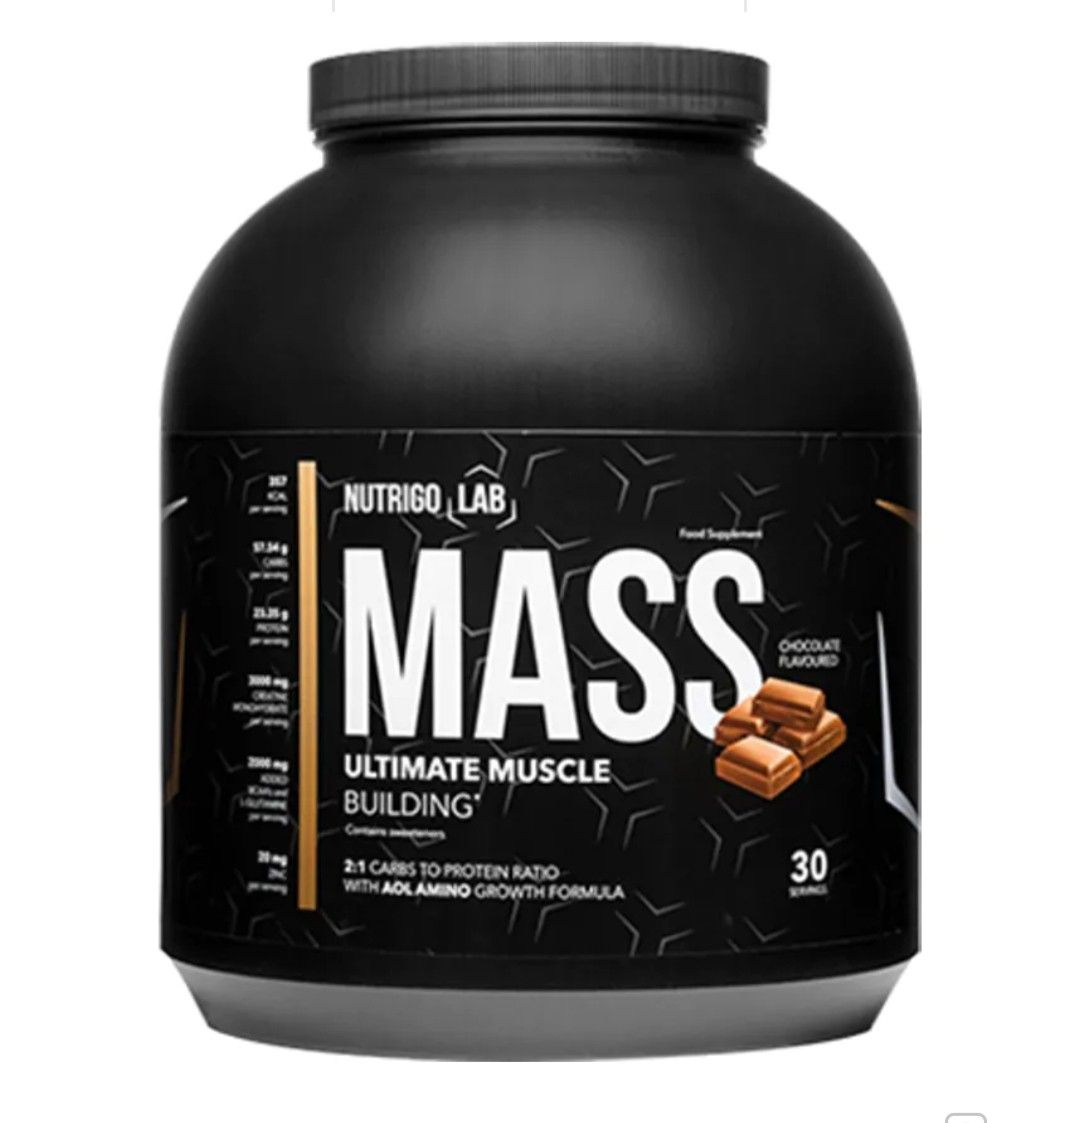 Nutrigo Lab Mass:Ultimate Supplement For Muscle Building